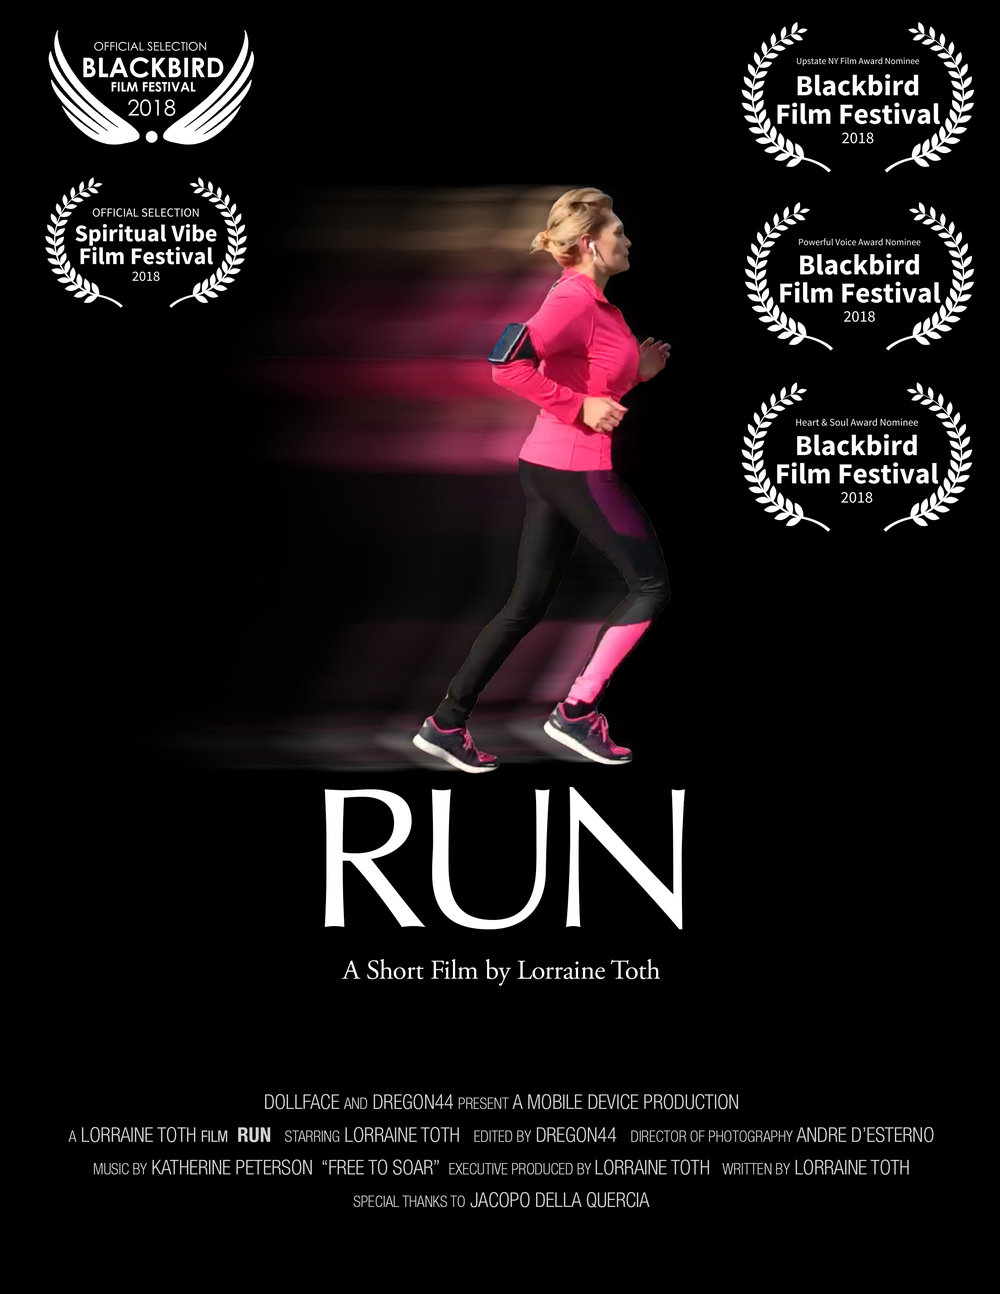 RUN - An award winning short film produced by Lorraine Toth - based on the book Run written by Lorraine. This was Lorraine's first film.  This film is available for viewing on Amazon Prime.